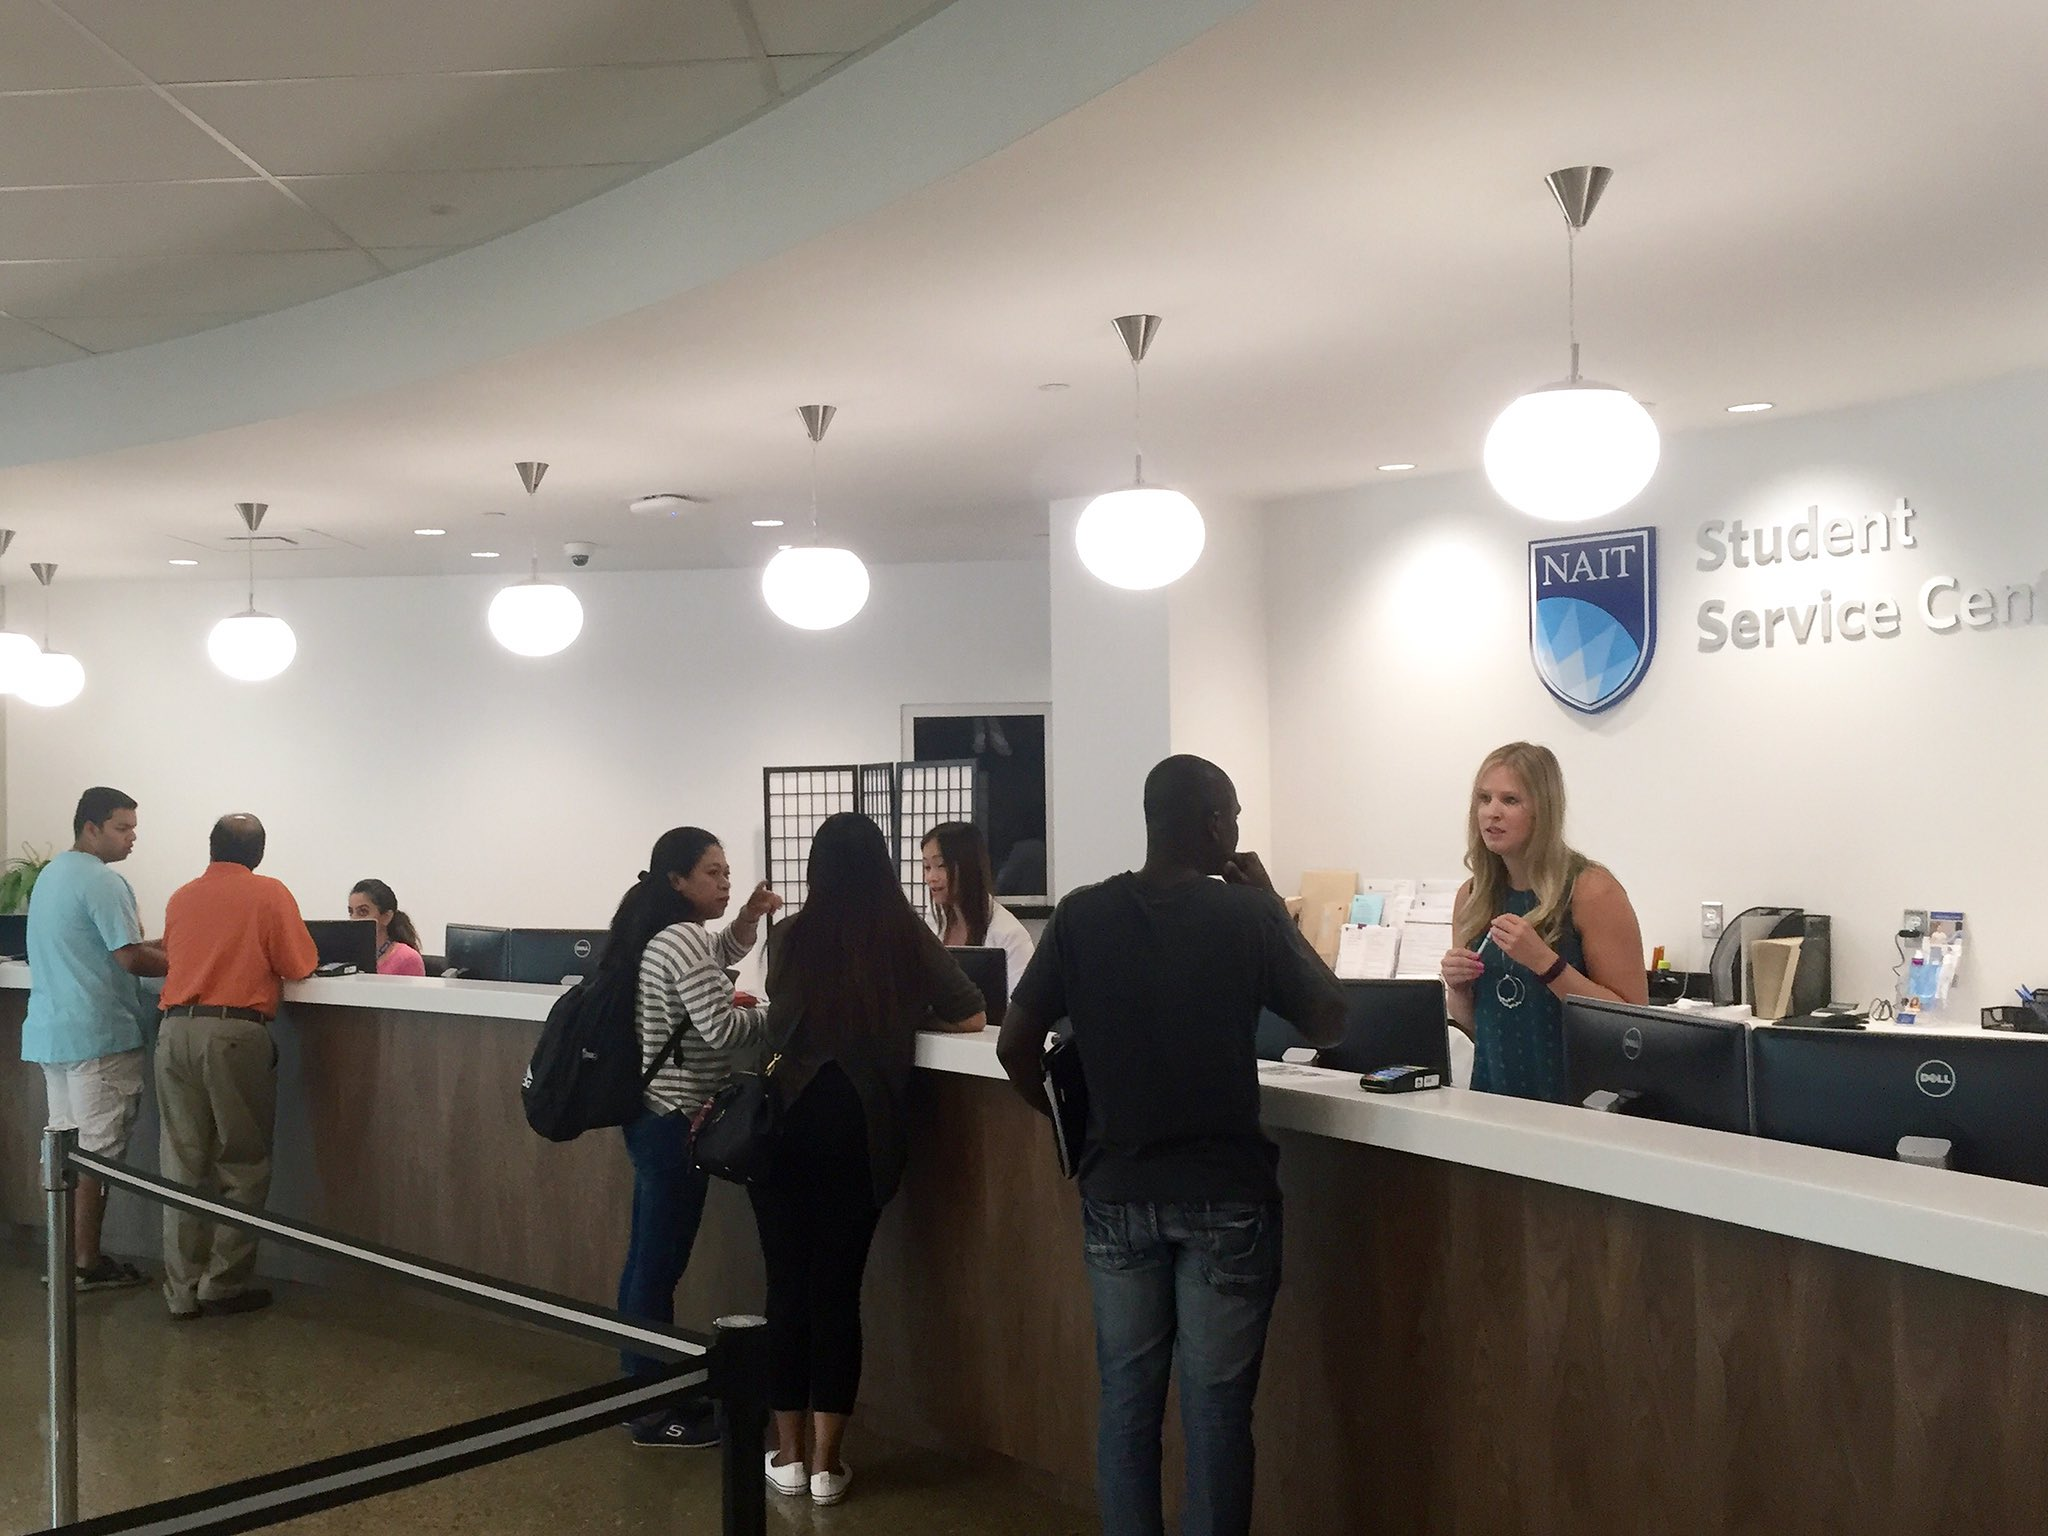 NAIT On Twitter The New Student Service Centre Is Open In For Applied Technology Tco KUQ6bfwSMo